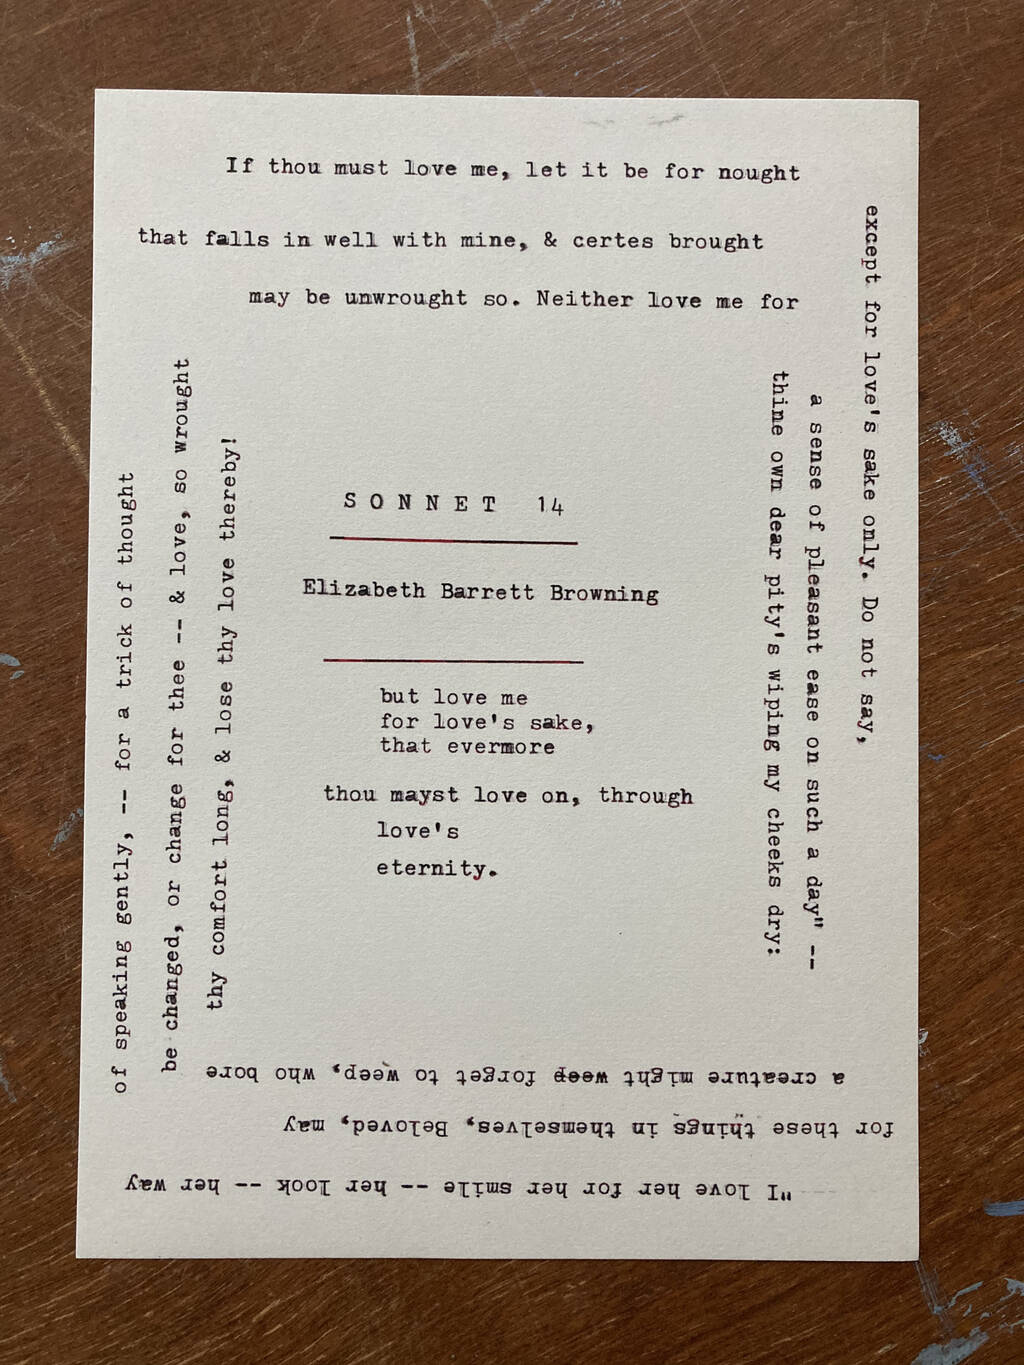 A typewritten poem, with typing in all four directions.